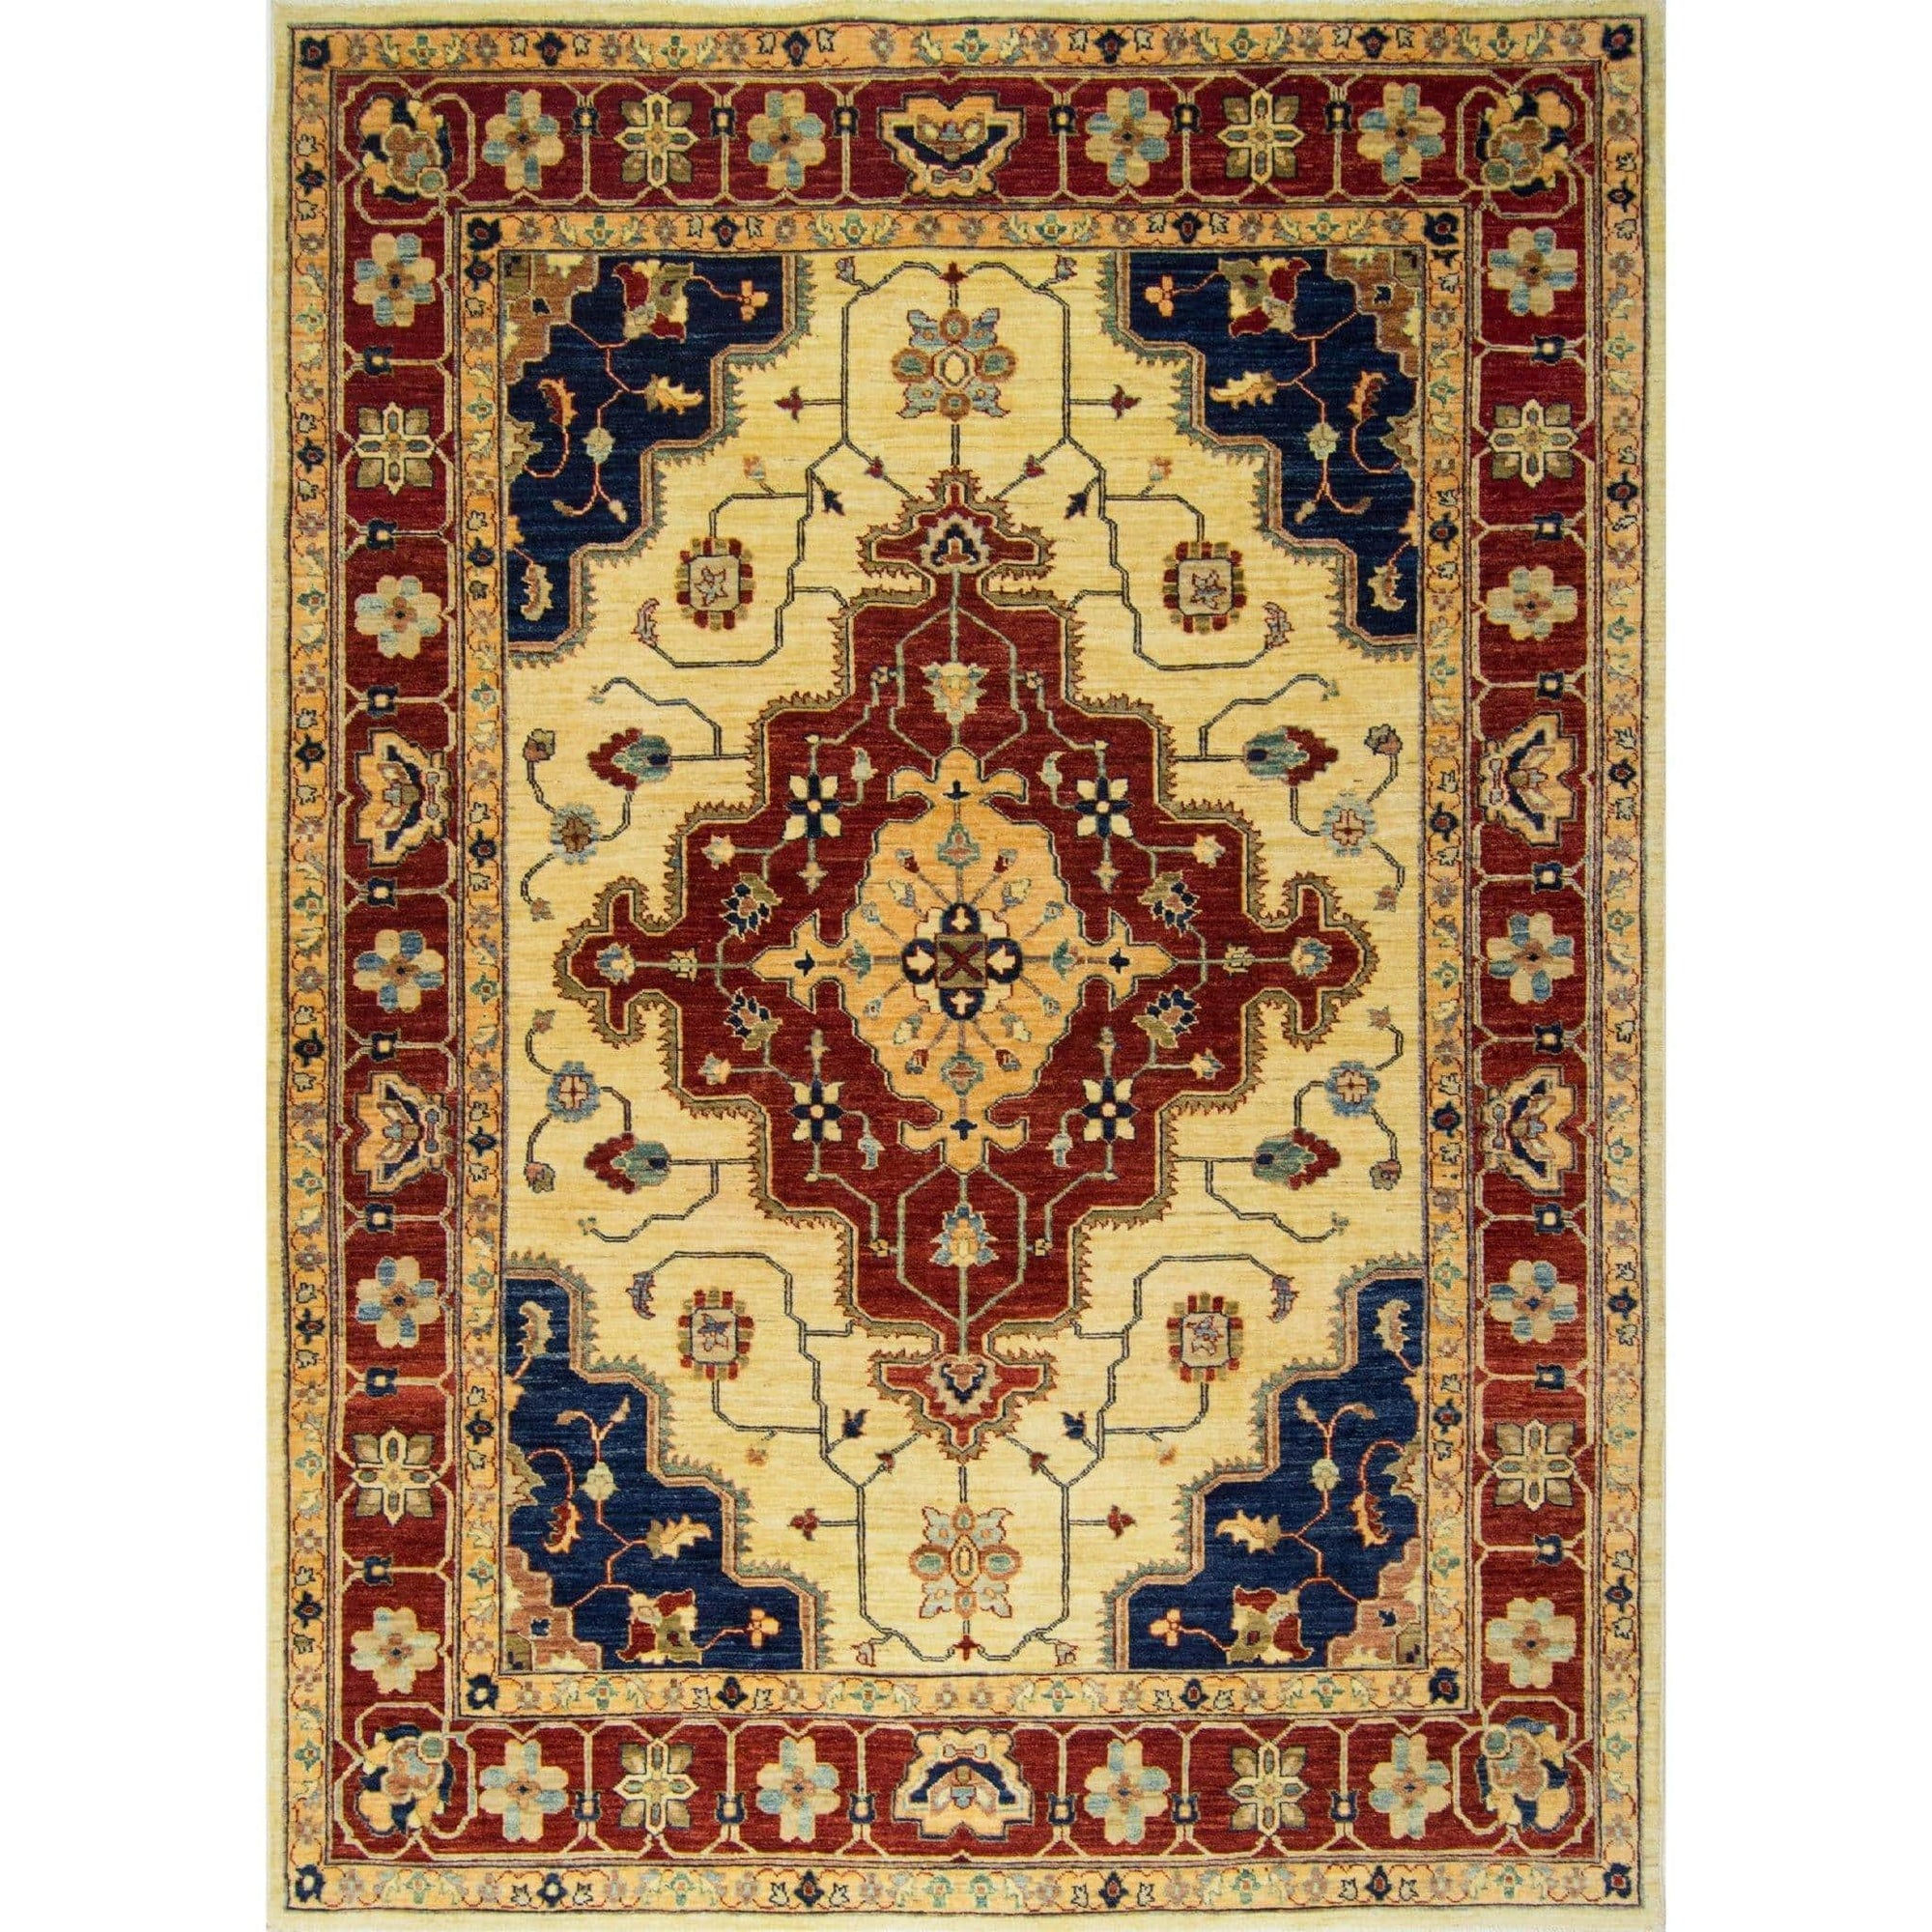 Fine Hand-knotted Wool Heriz Rug 188cm x 254cm Persian-Rug | House-of-Haghi | NewMarket | Auckland | NZ | Handmade Persian Rugs | Hand Knotted Persian Rugs